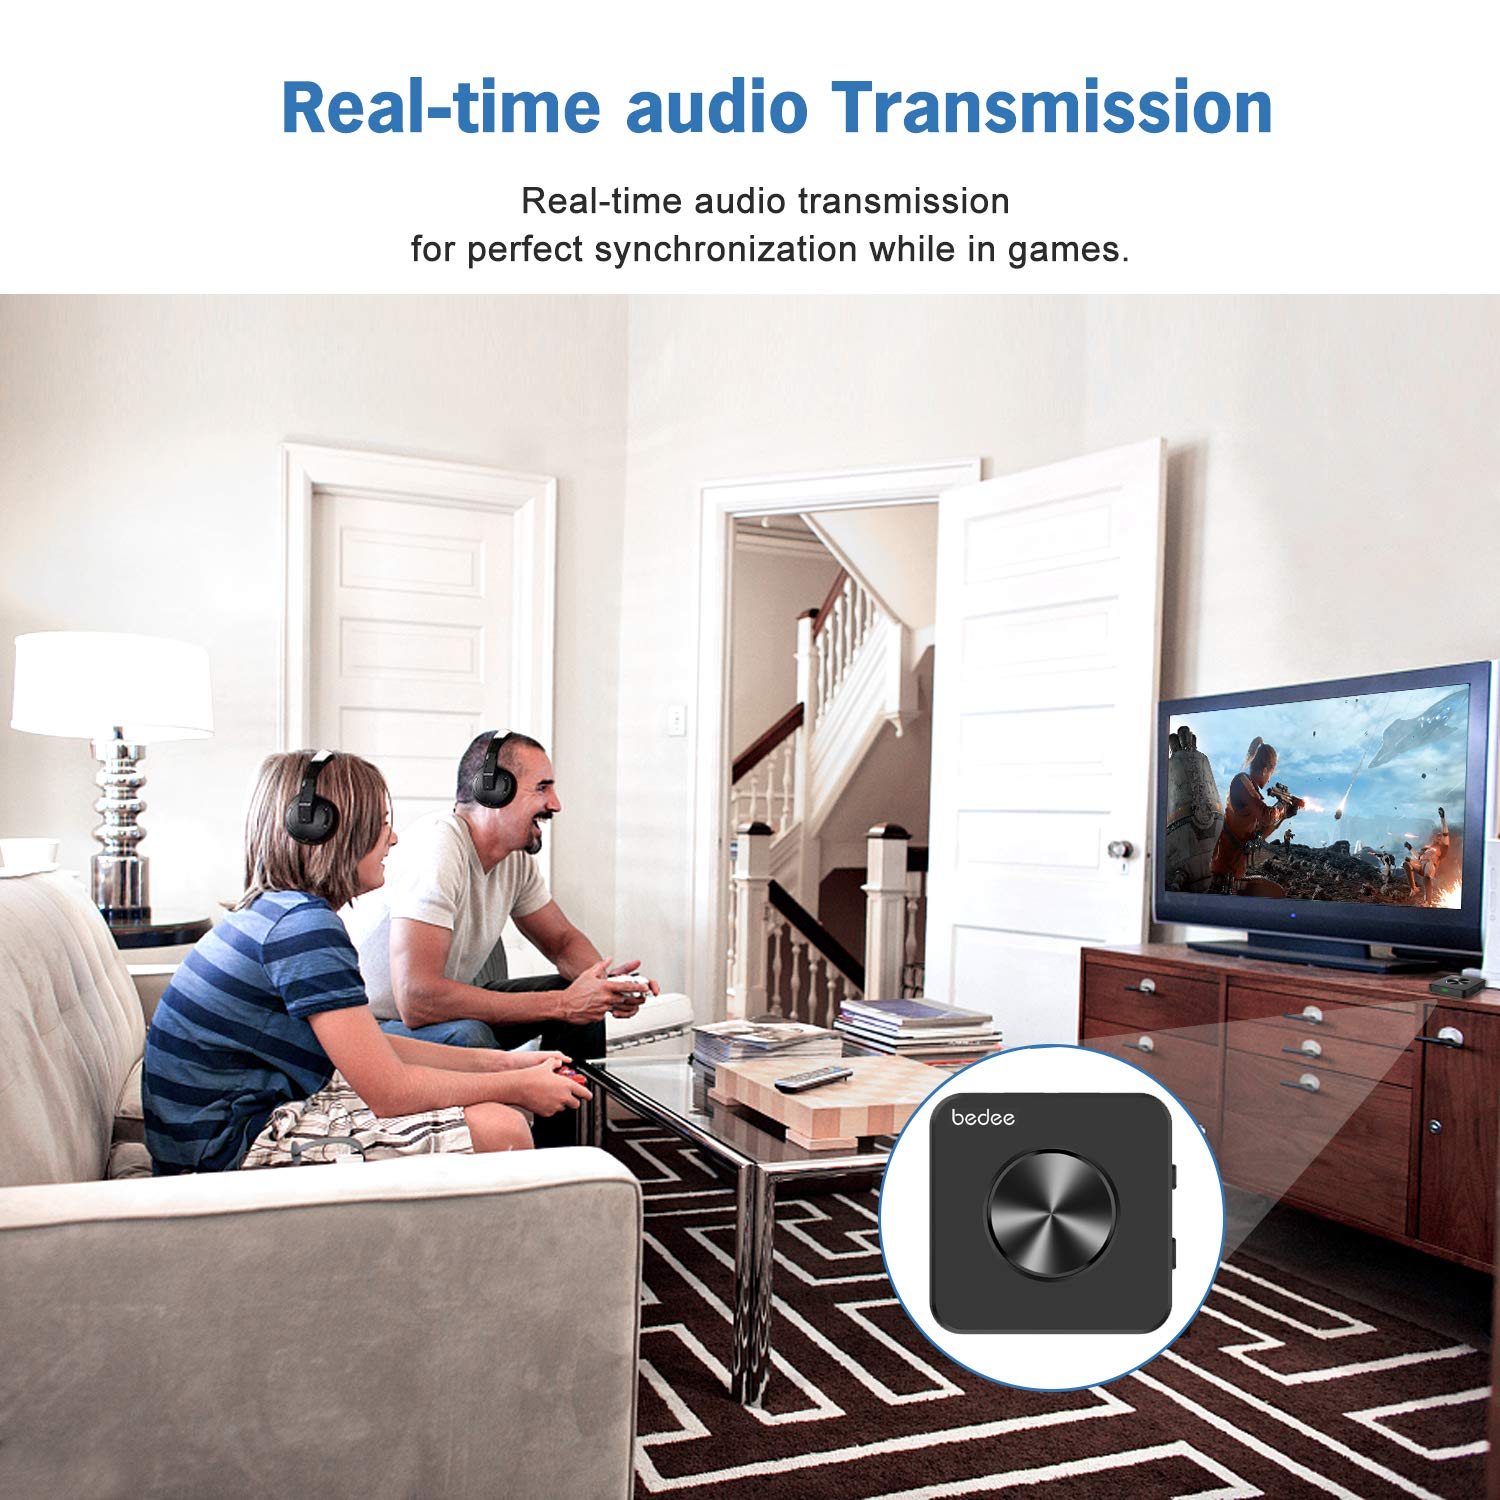 Bluetooth Empfänger bedee Bluetooth 5.0 Transmitter 2-in-1 Audio Adapter Receiver für HiFi Audio Stereo TV Laptop Lautsprecher PSP mit digitales optisches, 3,5 mm AUX, RCA Cable, aptX HD aptX LL Tech